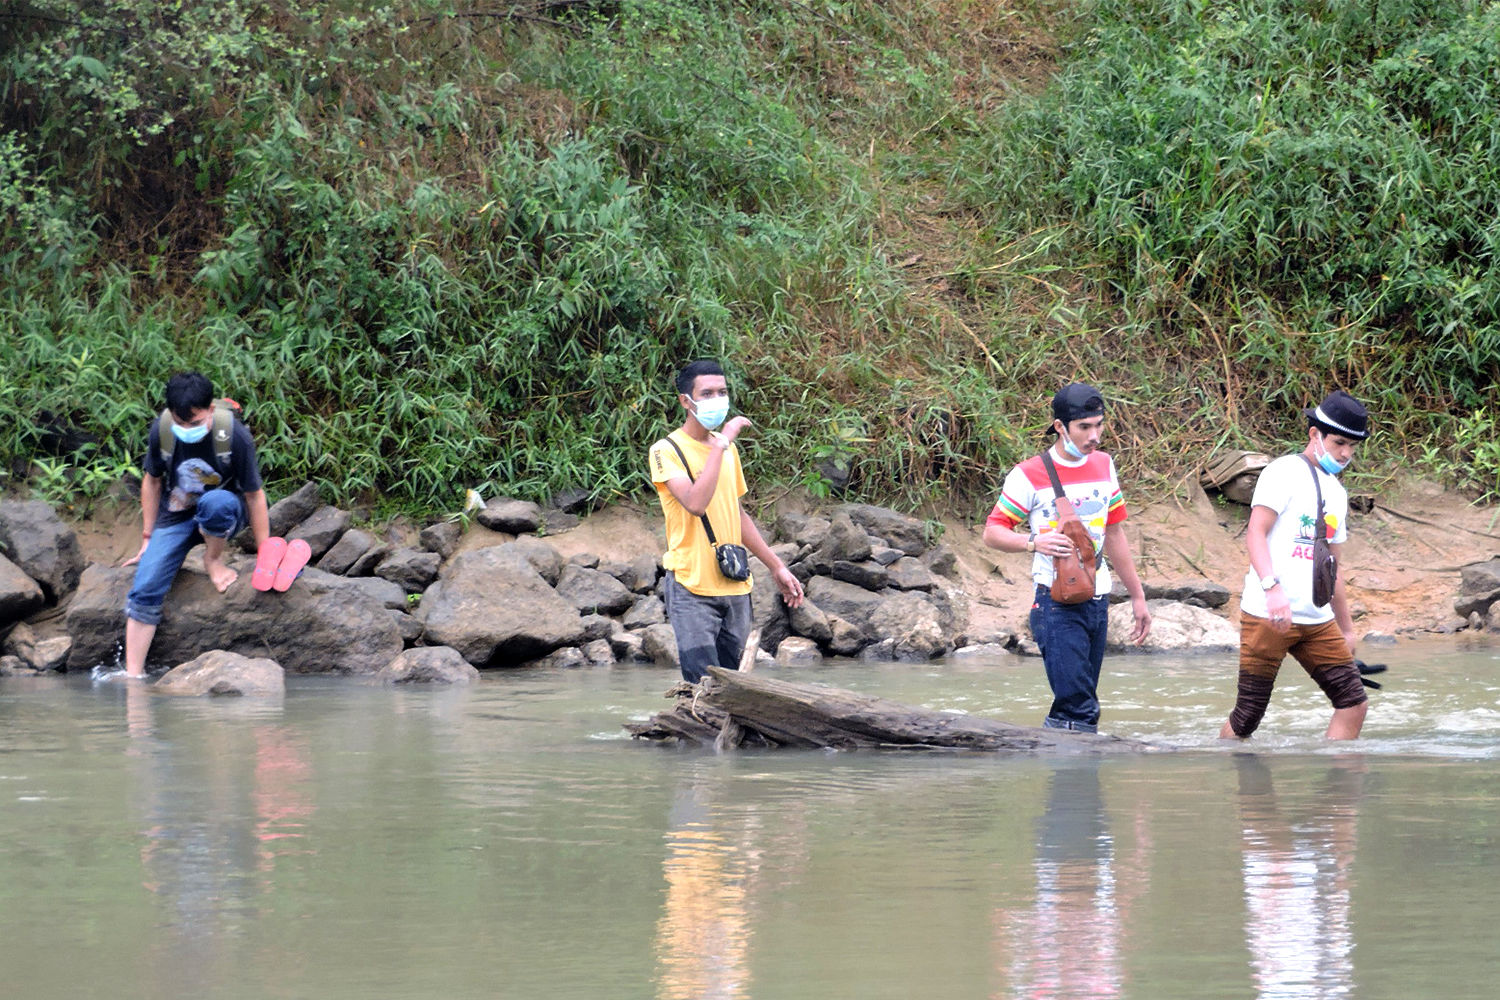 25 more arrested entering Thailand by wading across river from Malaysia | Thaiger